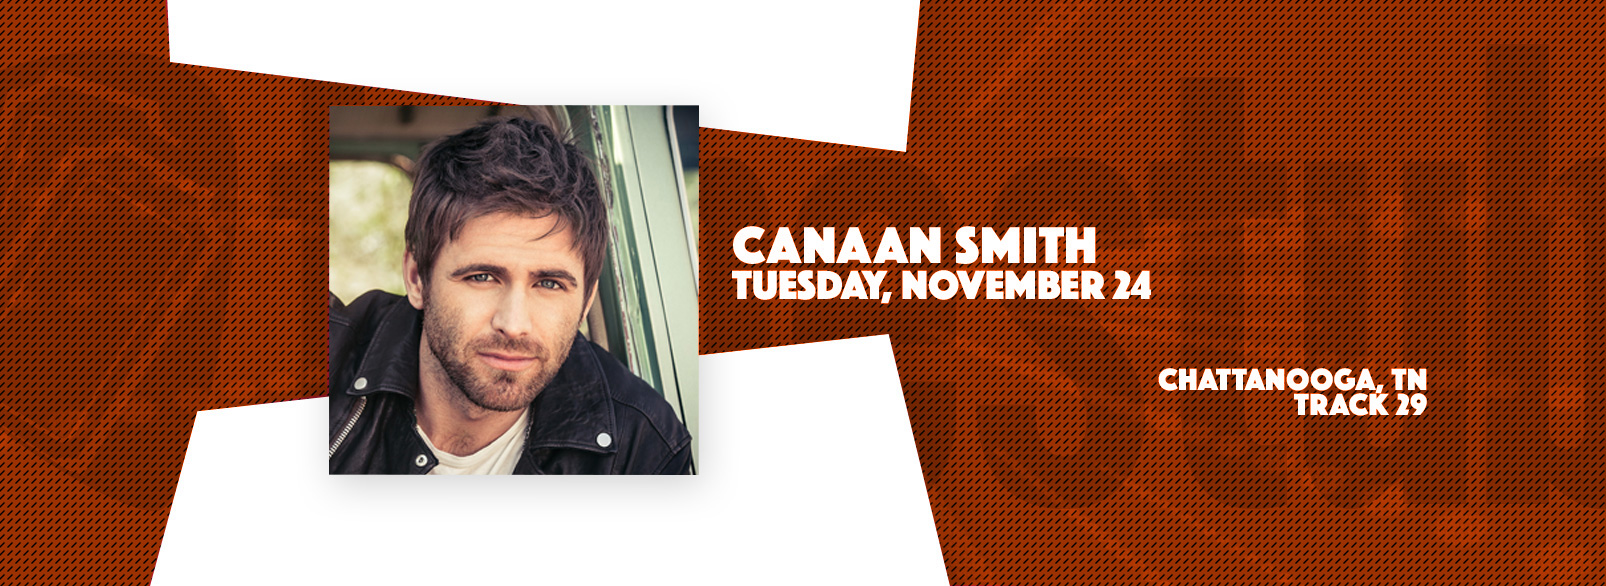 Canaan Smith @ Track 29